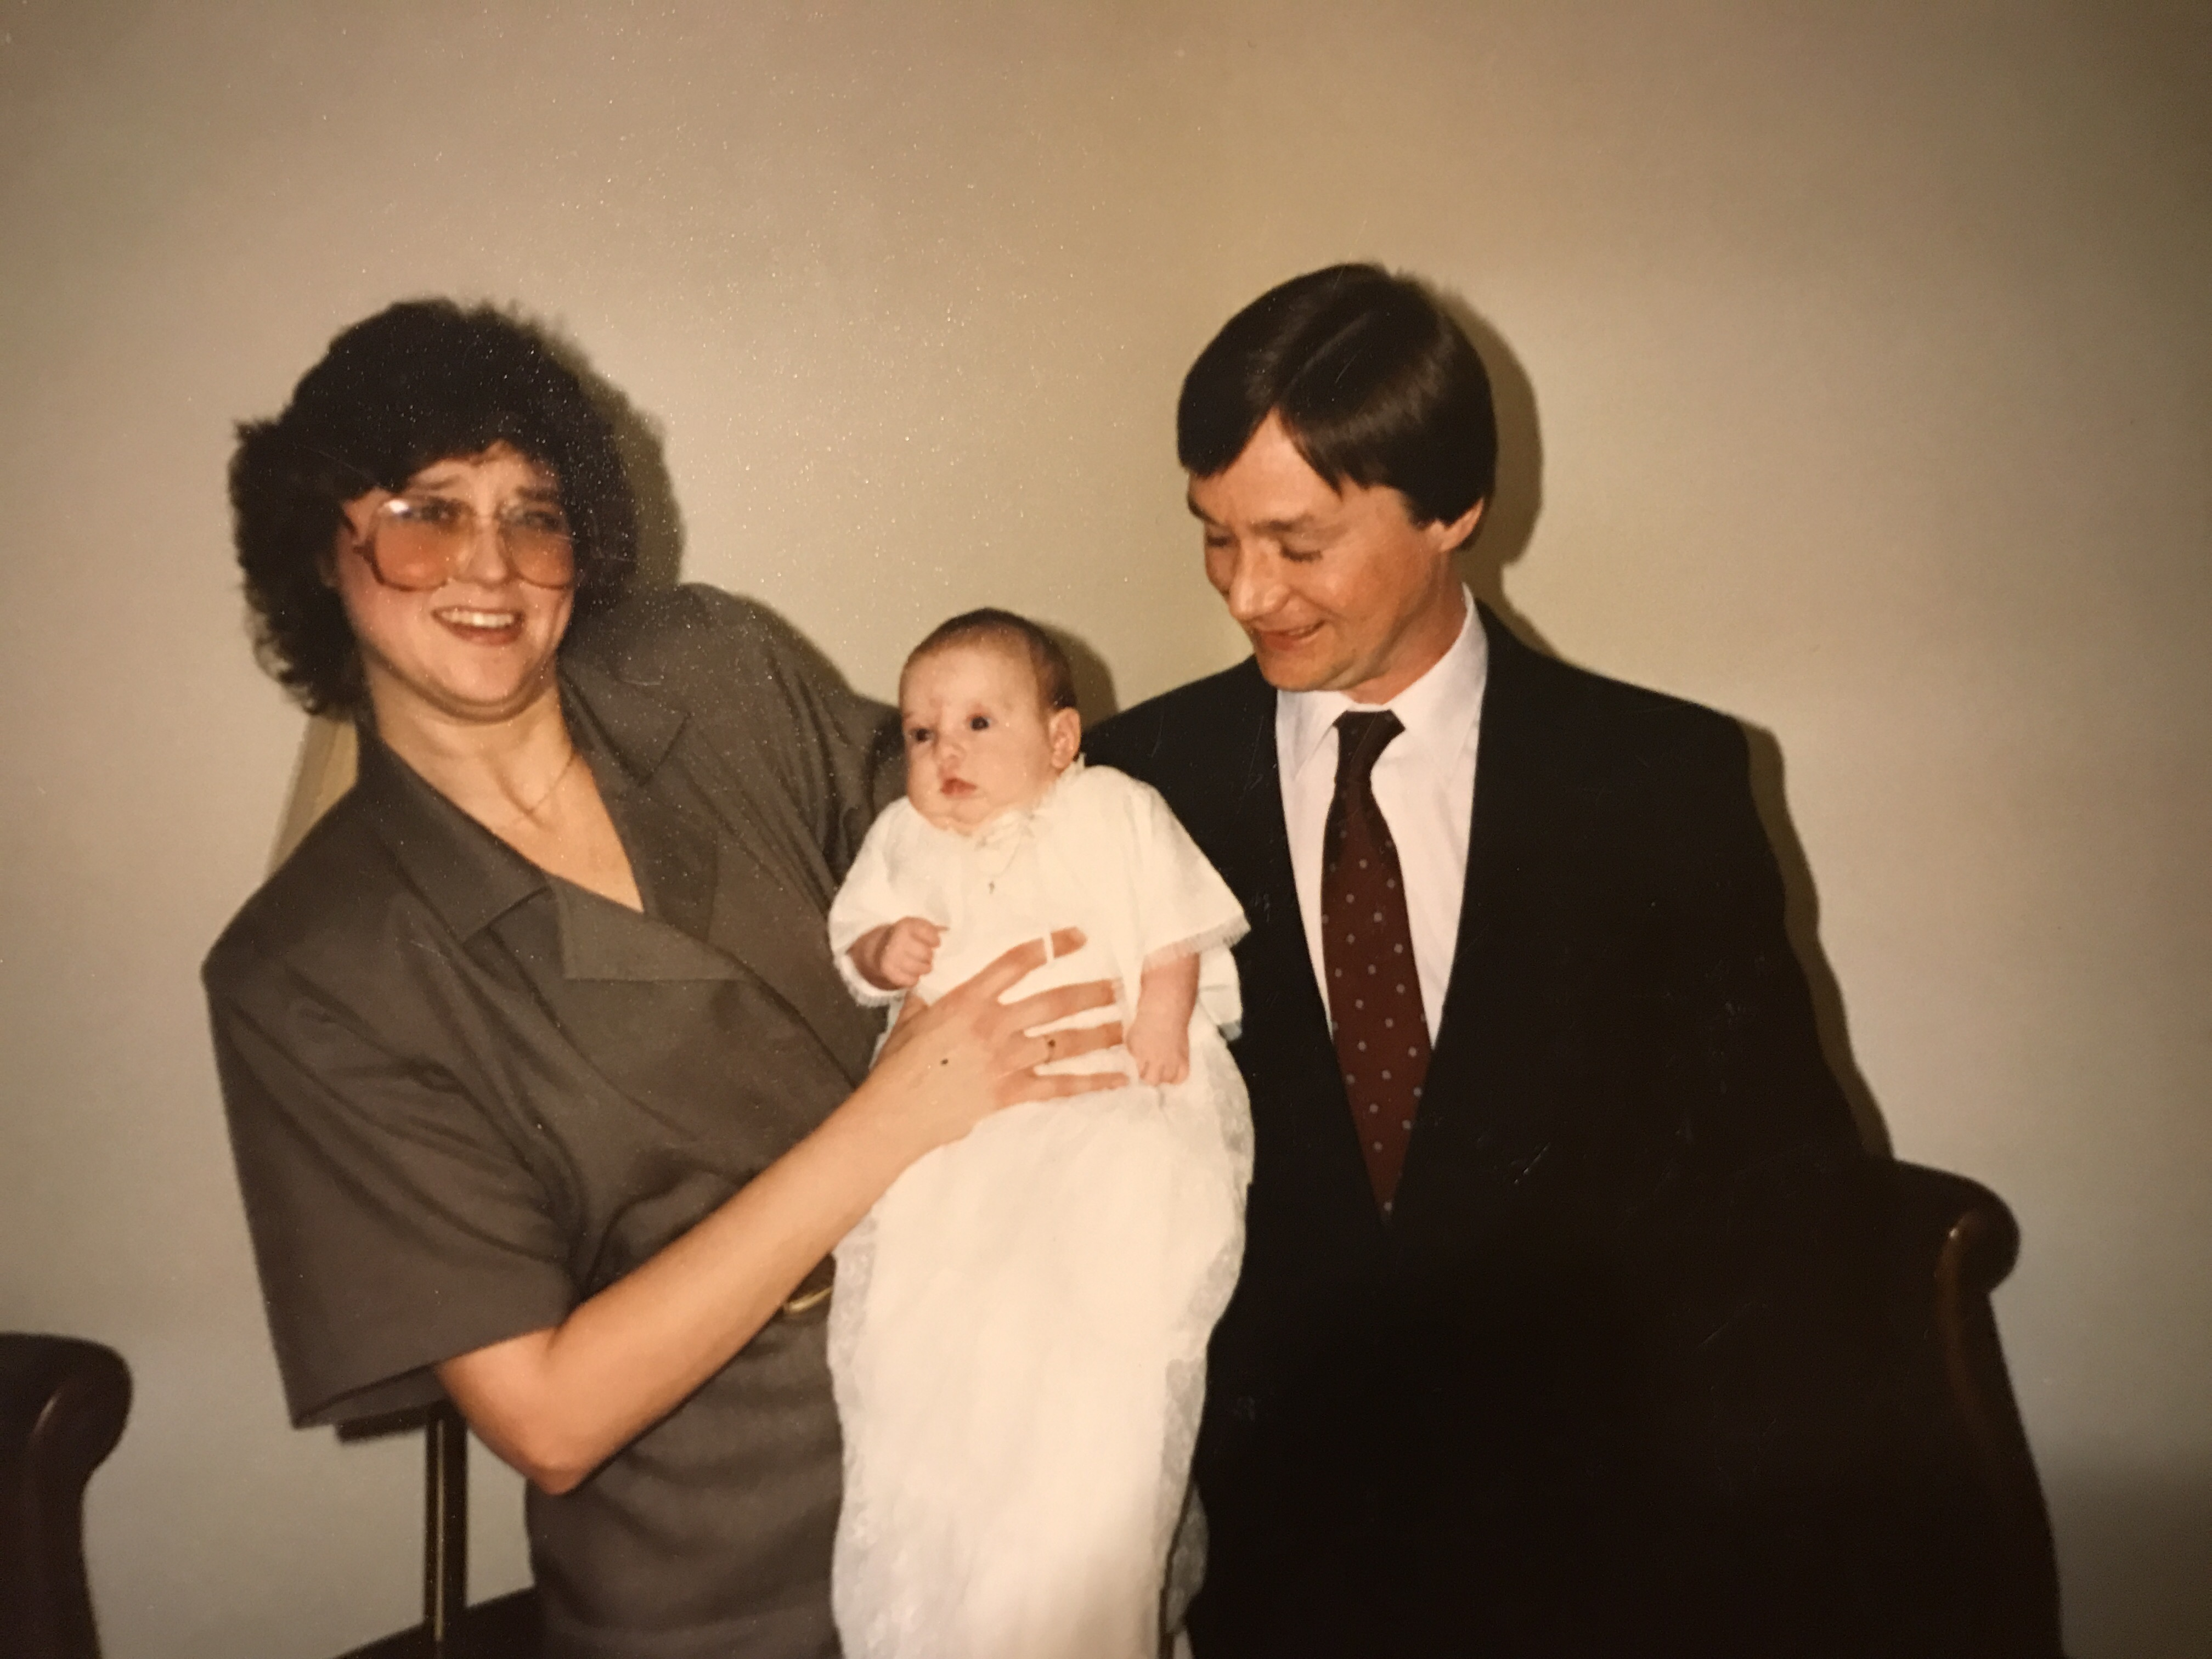 A great photo from my baptism with my godparents. I love how Denis is looking lovingly at me.